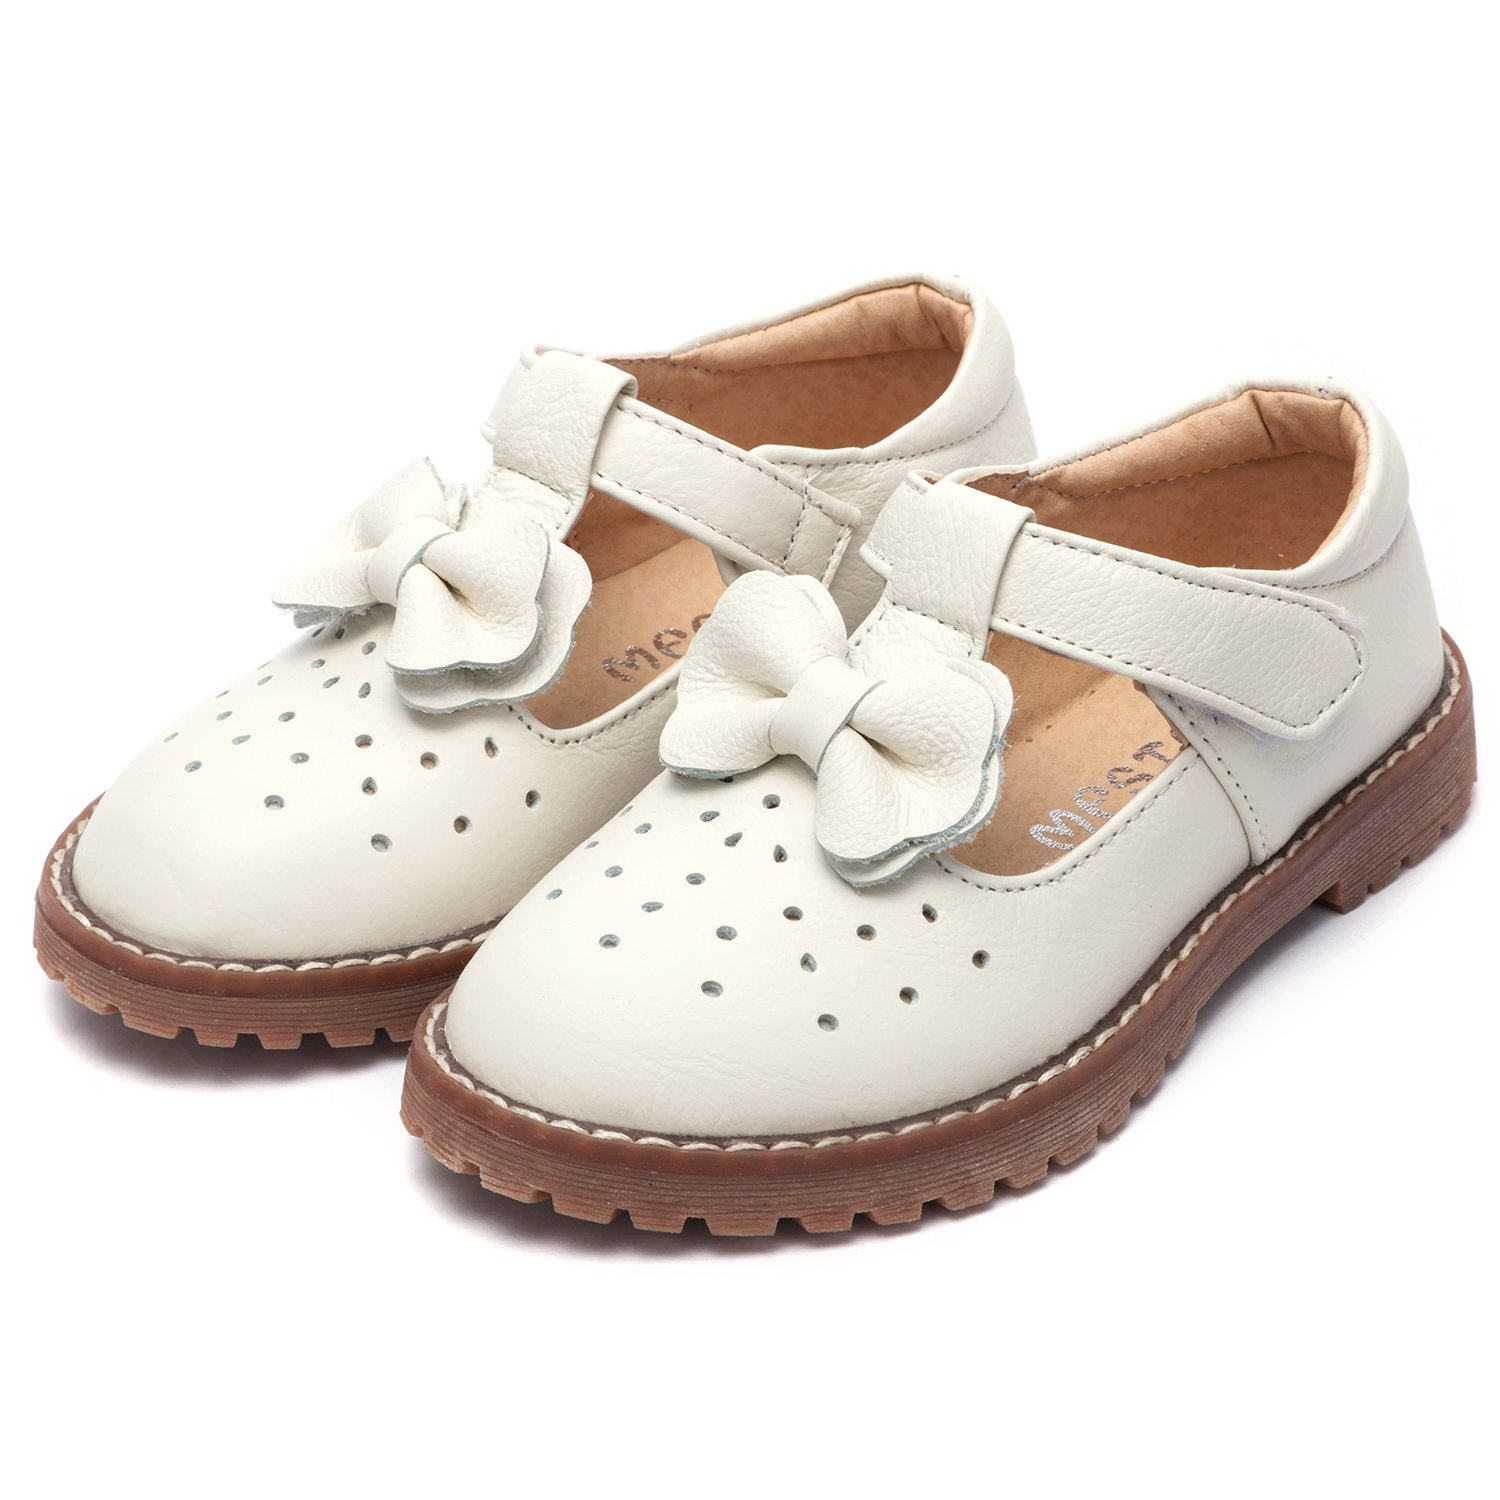 Ubella Kids Toddler Girls Retro T Bar Princess Dress Shoes Leather Strap Mary Jane Flat Oxford Shoes Loafers Girls